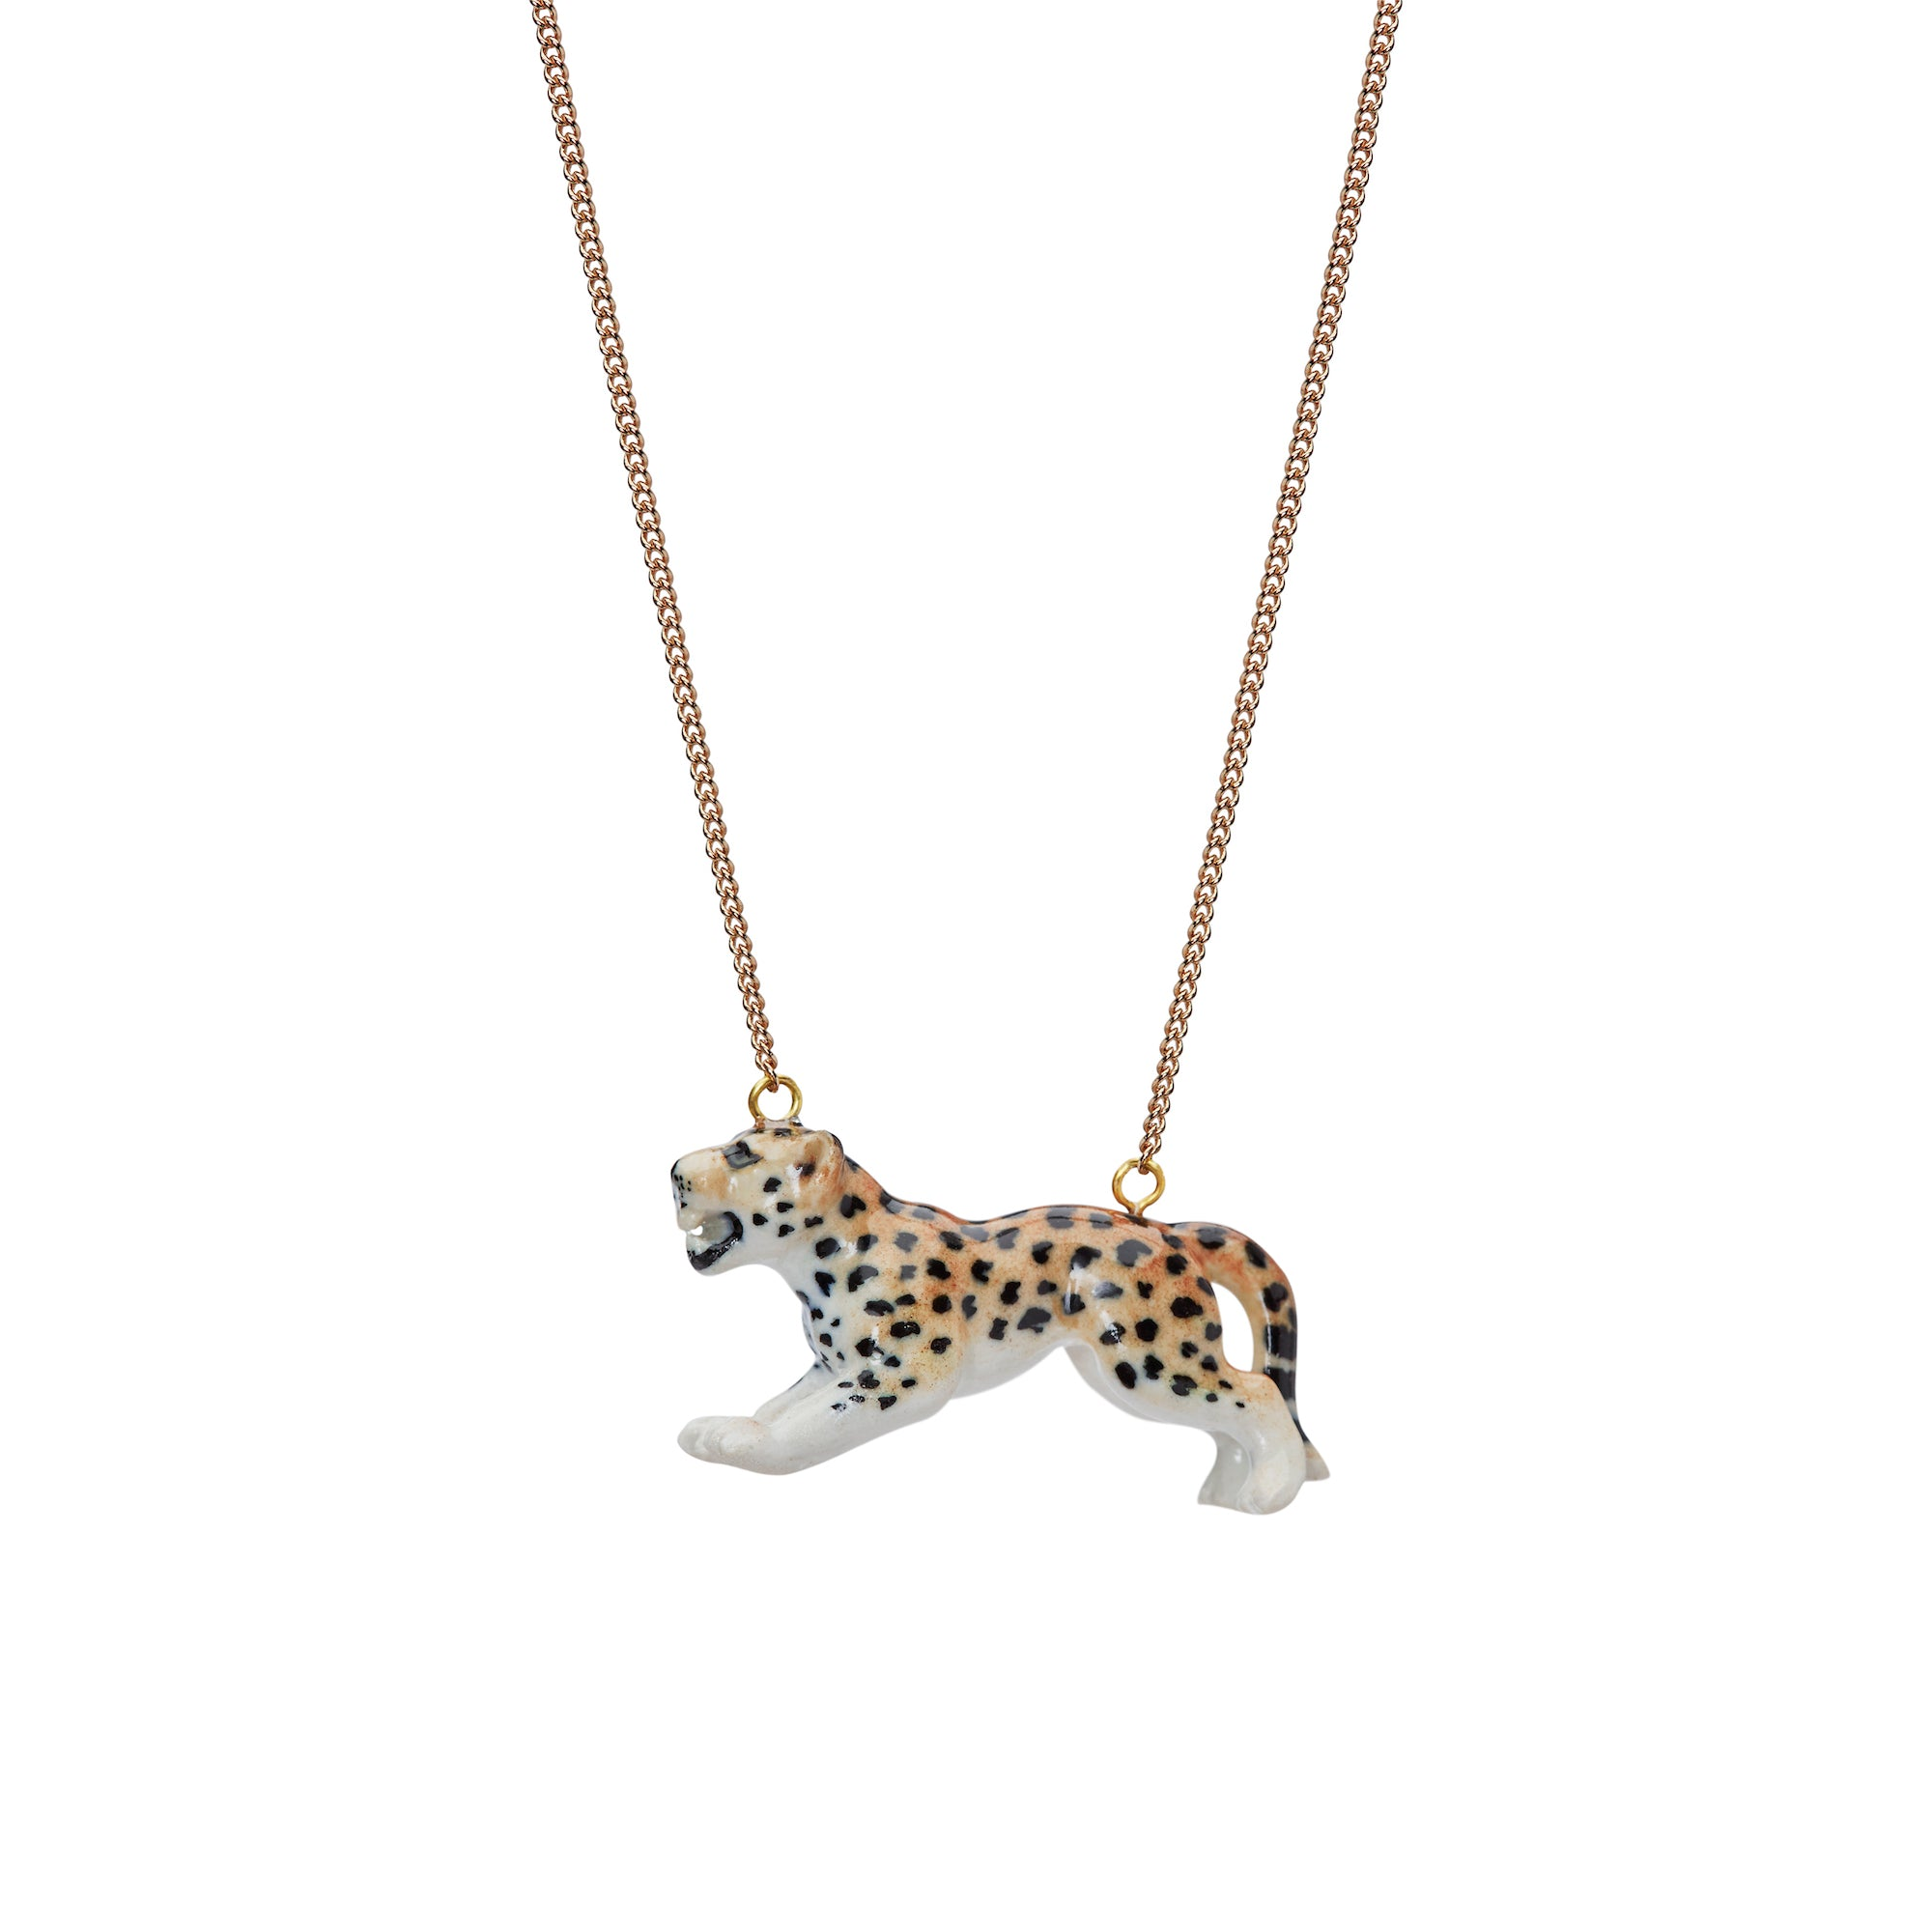 Leaping Leopard Necklace